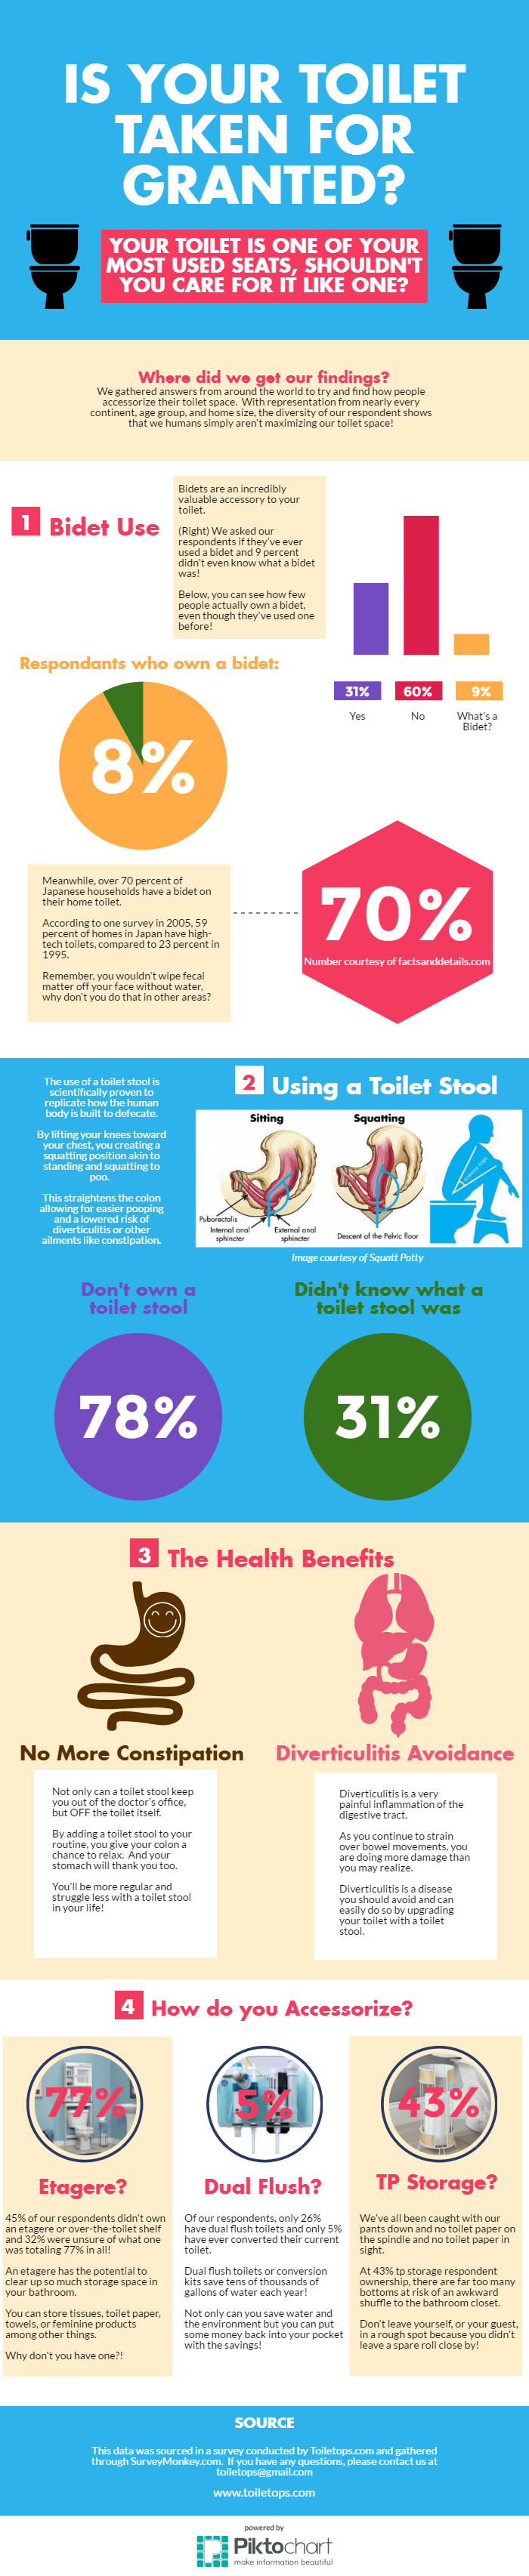 toilet accessories infographic